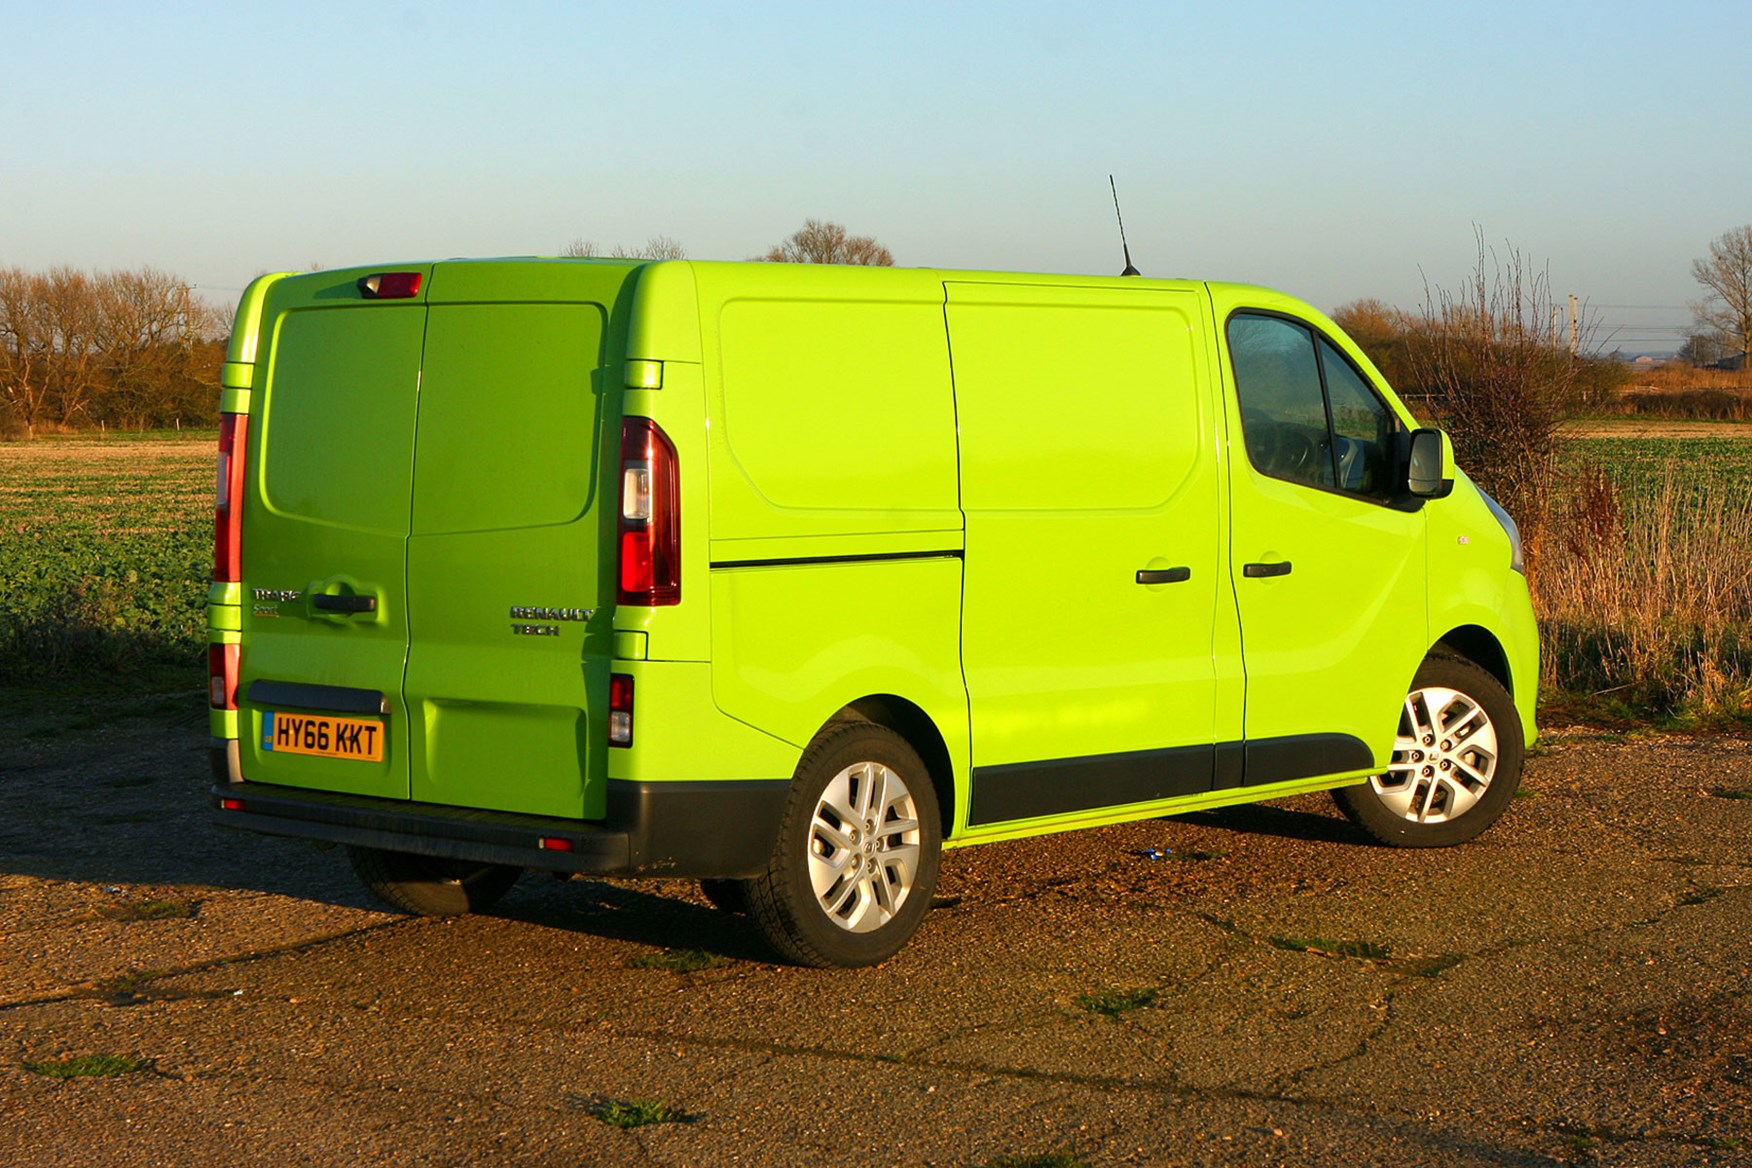 Renault Trafic Sport Euro 6 review - rear view, green